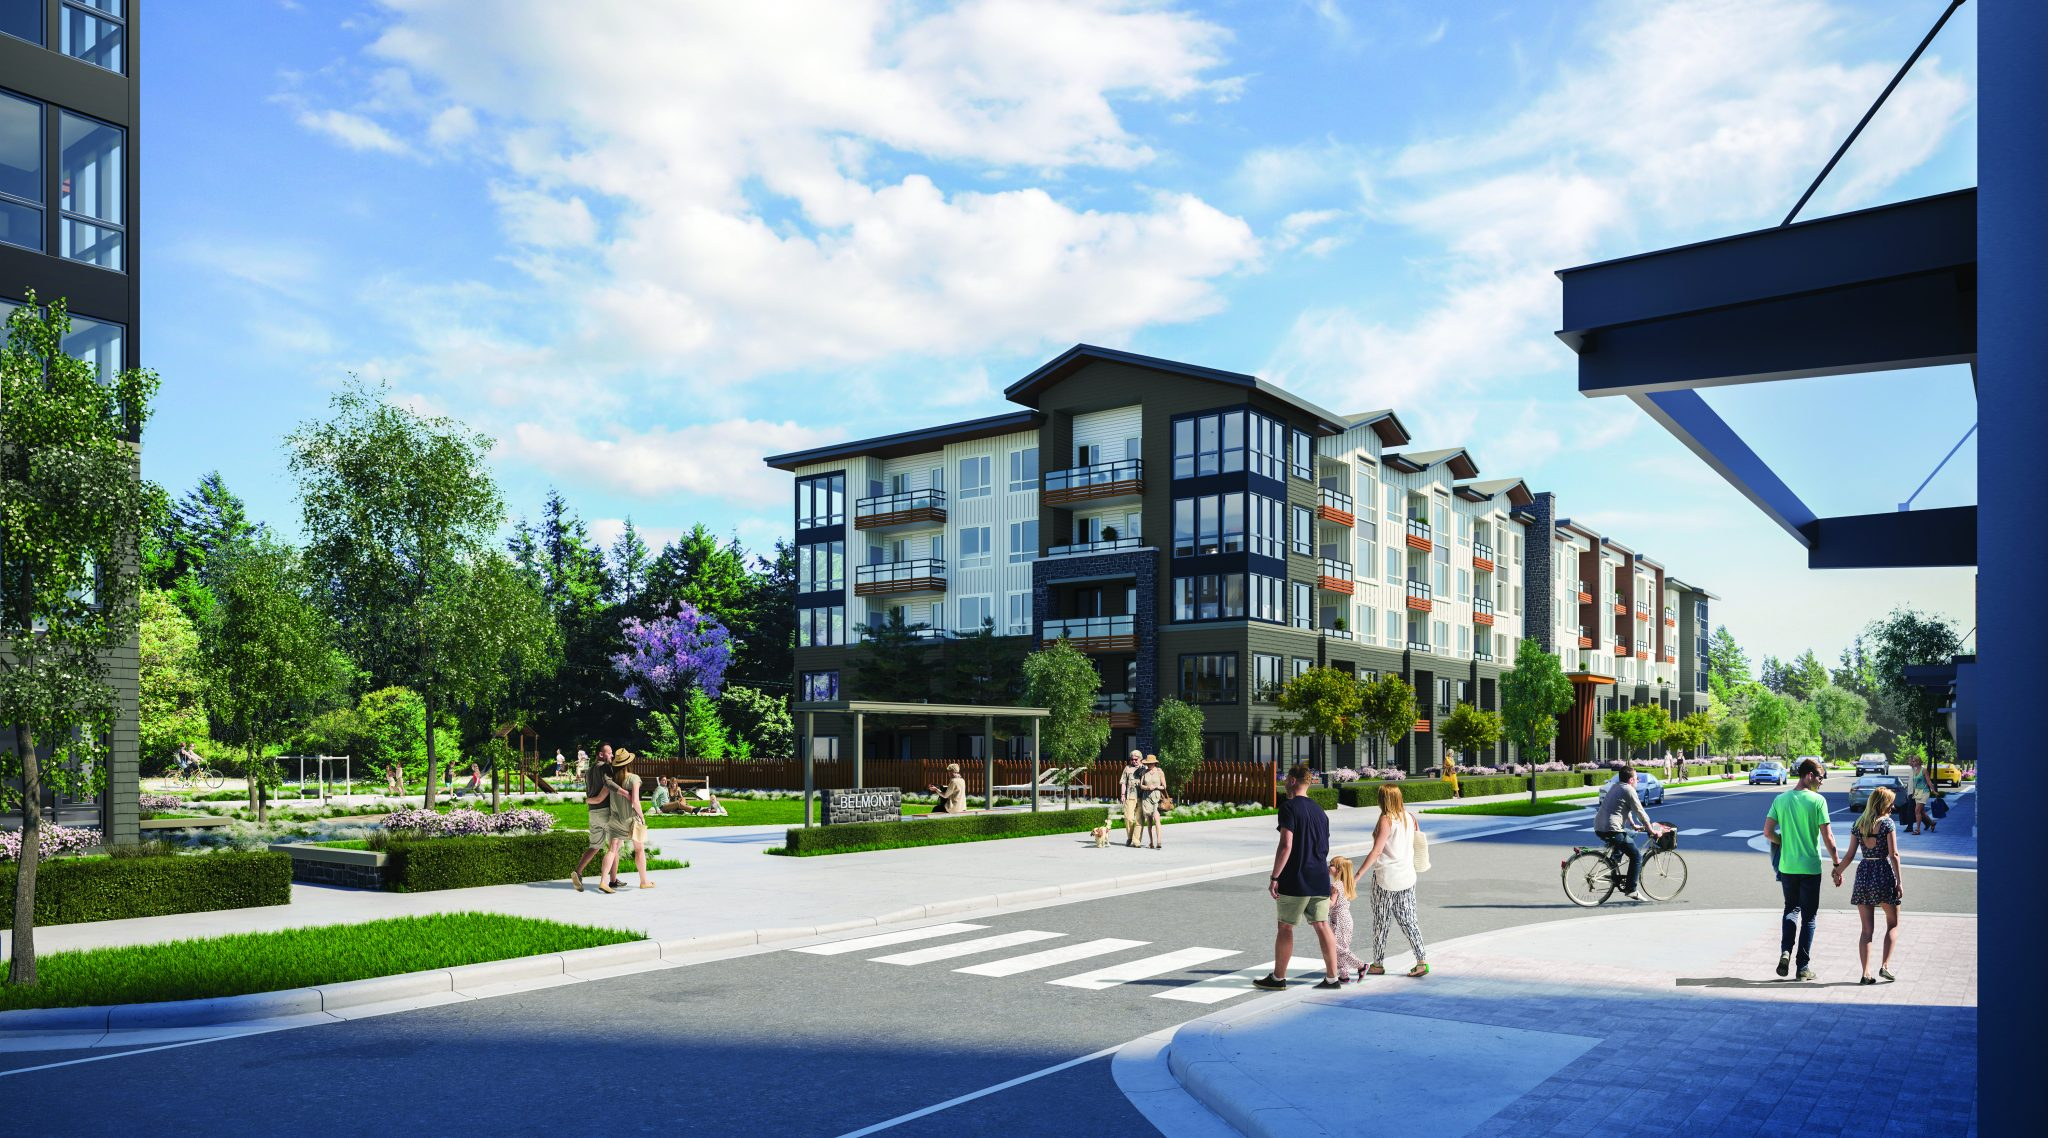 #MyBelmont is a unique place where trail meets home meets market. Residents have unparalleled access to both natural and urban amenities. Lush outdoor spaces seamlessly connect homes to flourishing West Coast forest and trails. While 160,000 square feet of local favourites and convenient necessities are only steps away including the landmark Thrifty Foods. This blend of urban lifestyle alongside the Galloping Goose Trail in Langford sets a new standard for urban living in the Westshore.